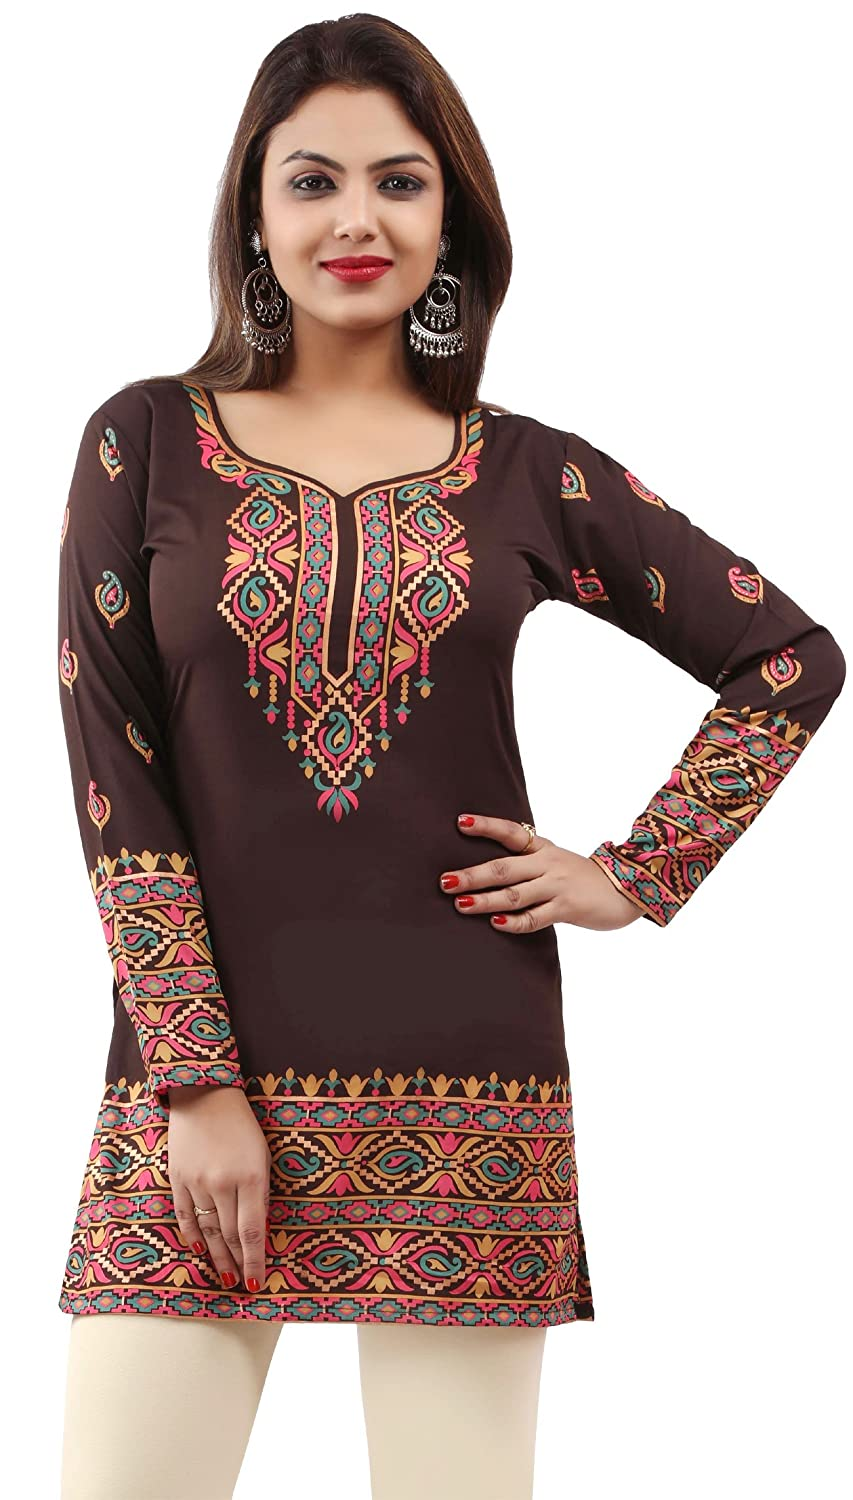 Maple Clothing Indian Kurtis Women's Tunic Top Printed India Clothing Event162p